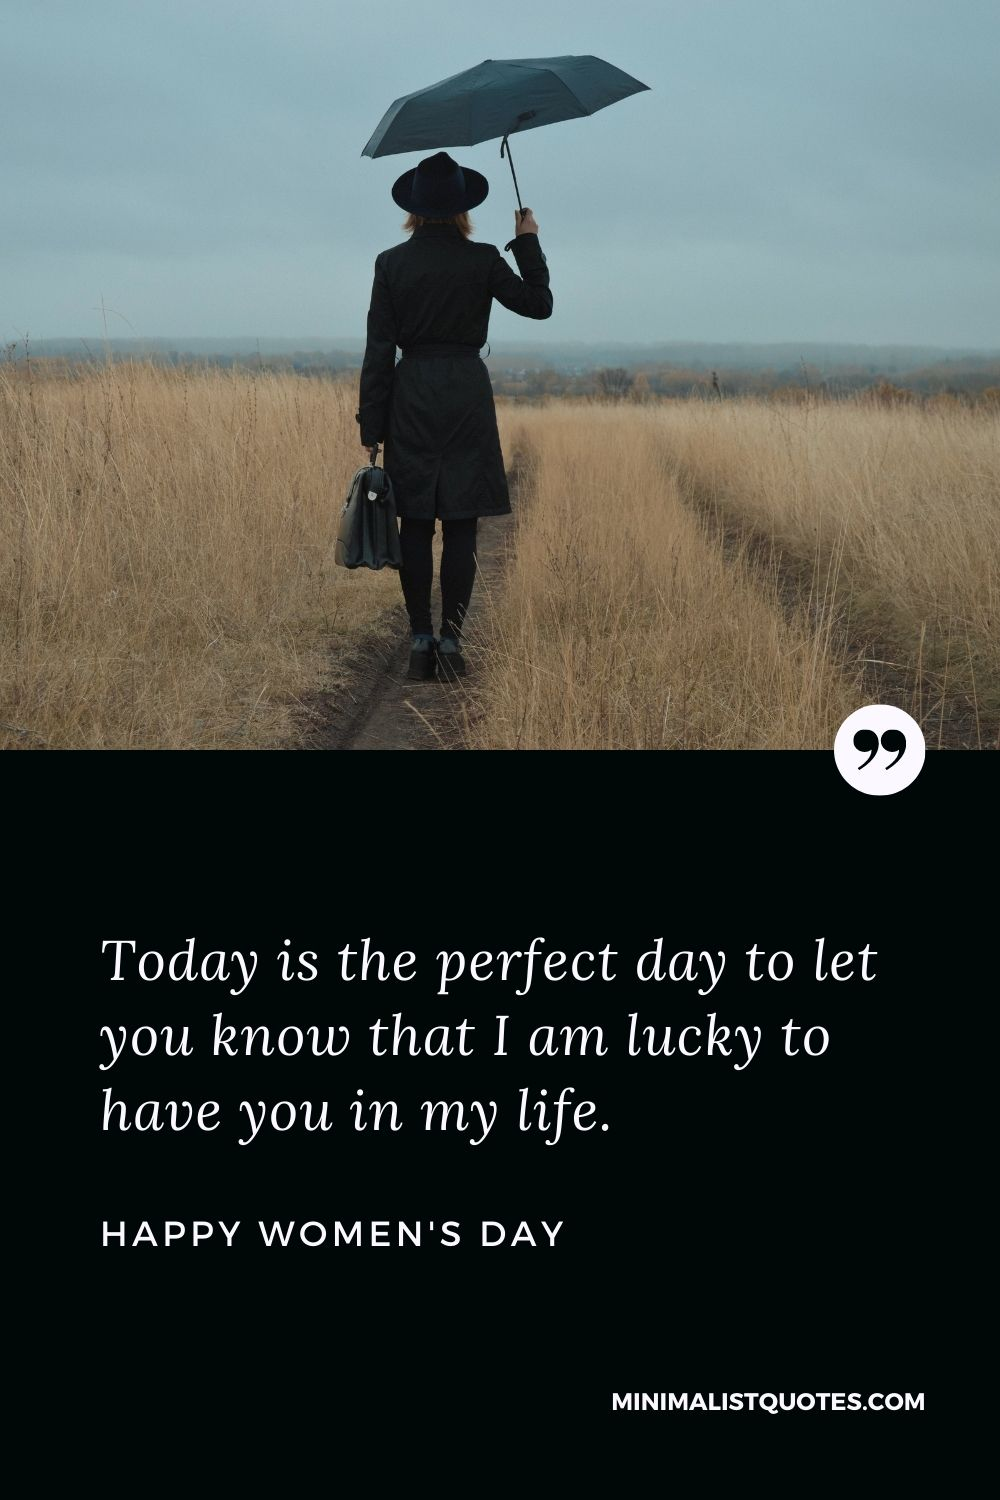 Women's Day Wish & Message With HD Image: Today is the perfect day to let you know that I am lucky to have you in my life.